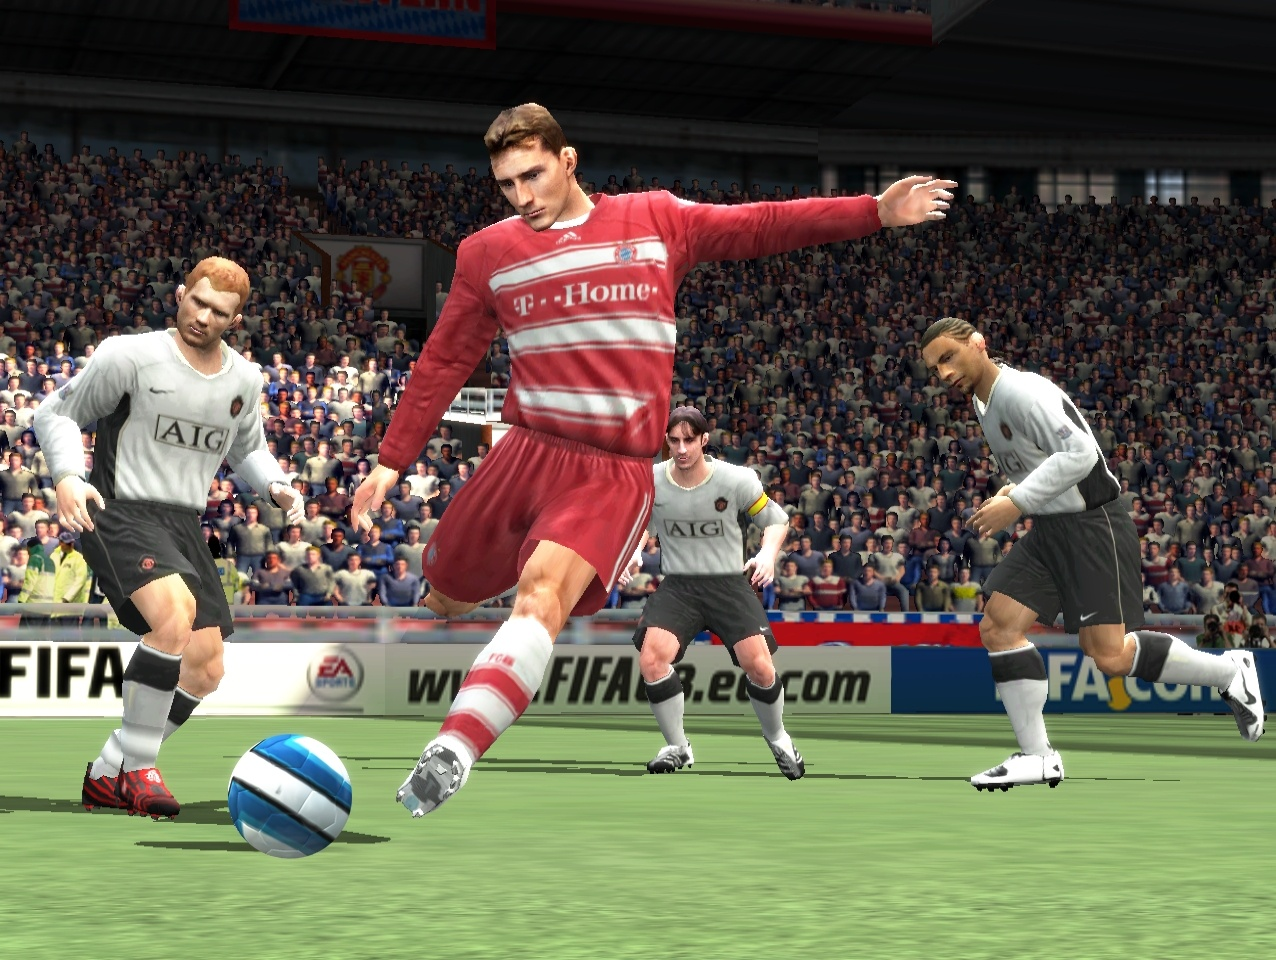 FIFA 08 doesn't look particularly amazing, but it moves quickly, and the player animation is spot-on.